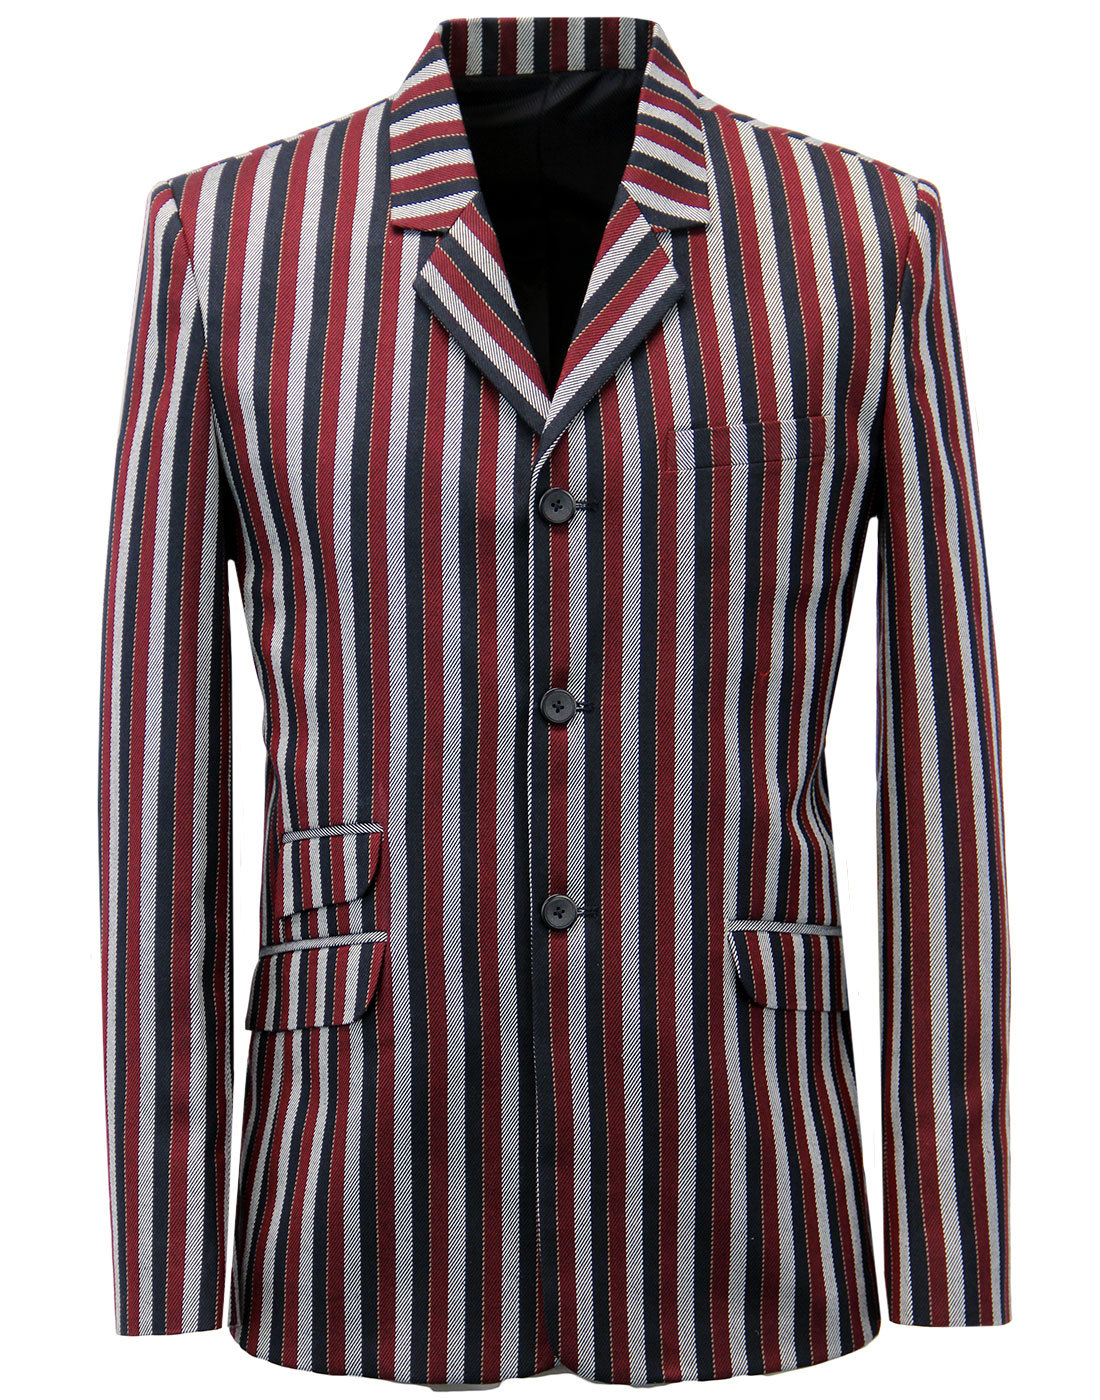 Offbeat MADCAP ENGLAND 1960s Mod Boating Blazer